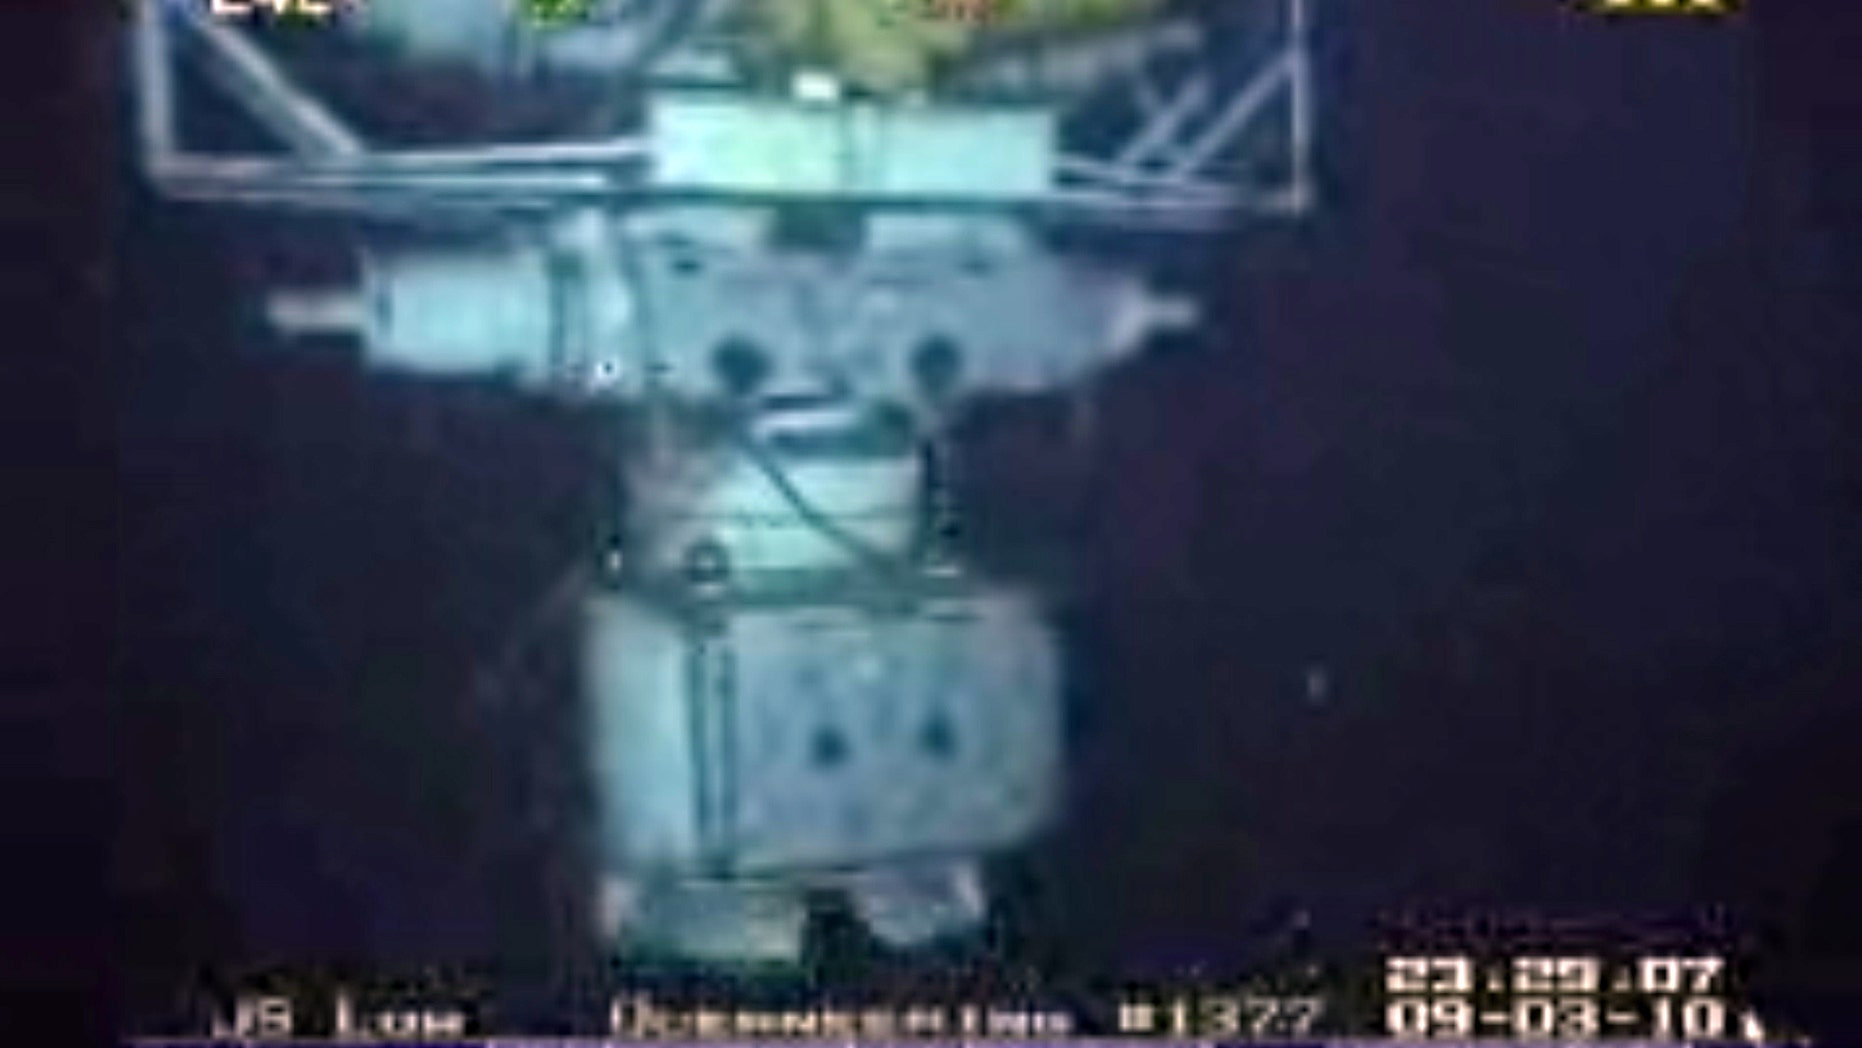 In this image taken from video provided by BP  PLC at 12:23 a.m. EDT, Saturday Sept. 4, 2010 shows the blowout preventer that failed to stop oil from spewing into the Gulf of Mexico being raised to the surface. The blowout preventer wasn't expected to reach the surface until Saturday, at which point government investigators will take possession of it.